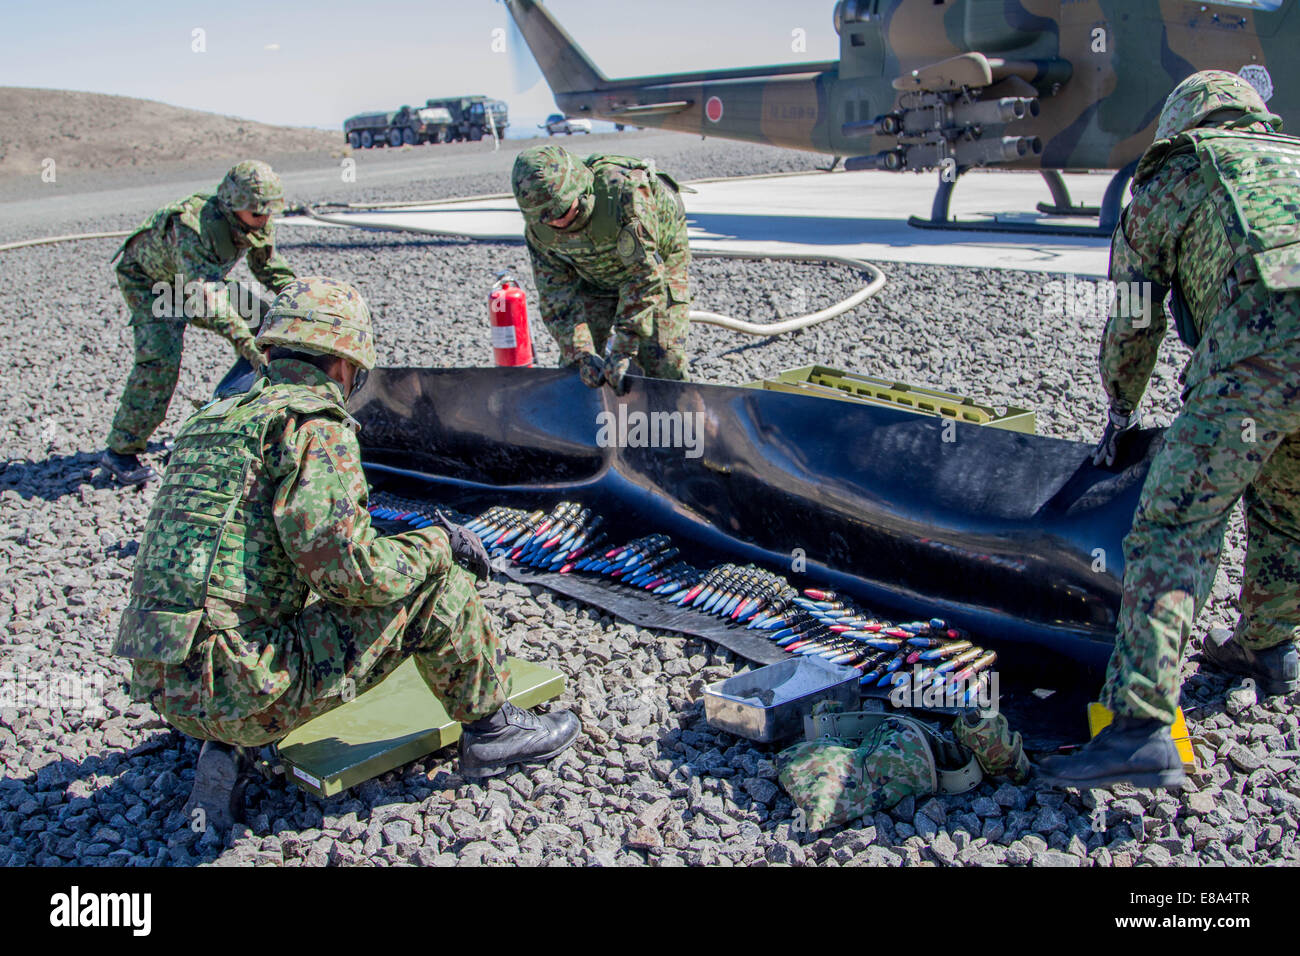 Japan Ground Self-Defense Force soldiers prepare ammunition to be loaded into the 20 mm cannon of an AH-1S Cobra Stock Photo